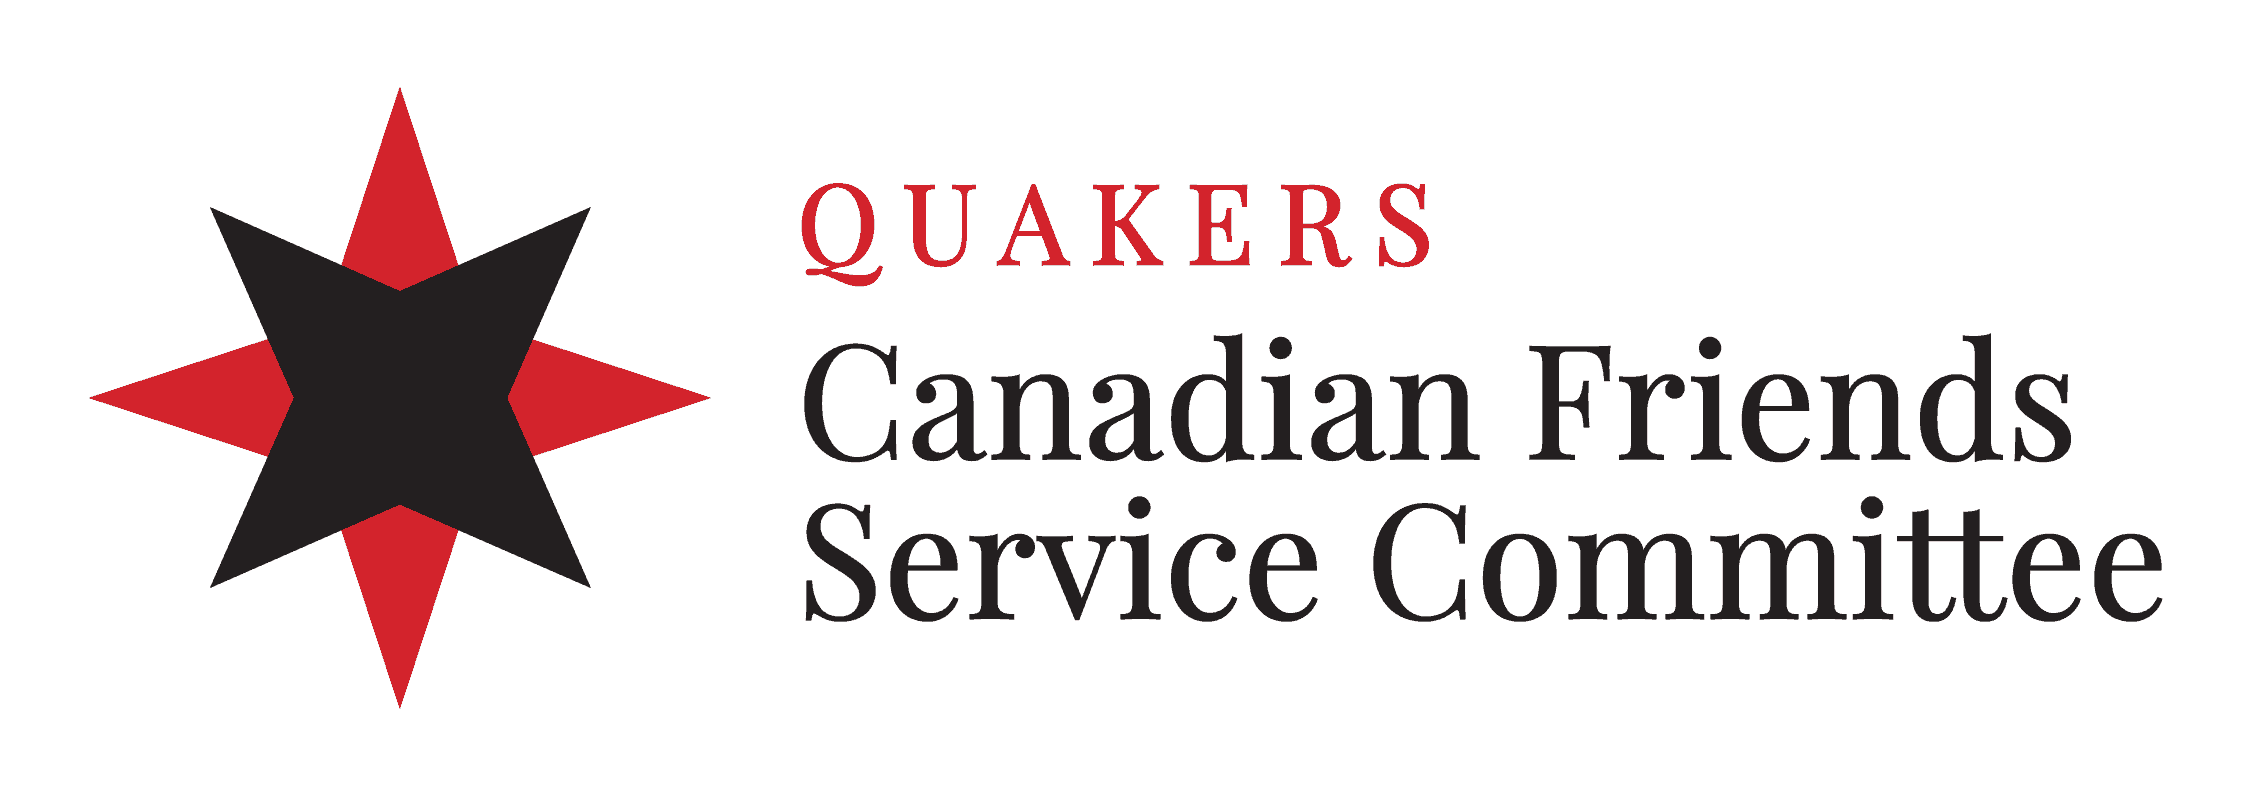 Canadian Friends Service Committee logo